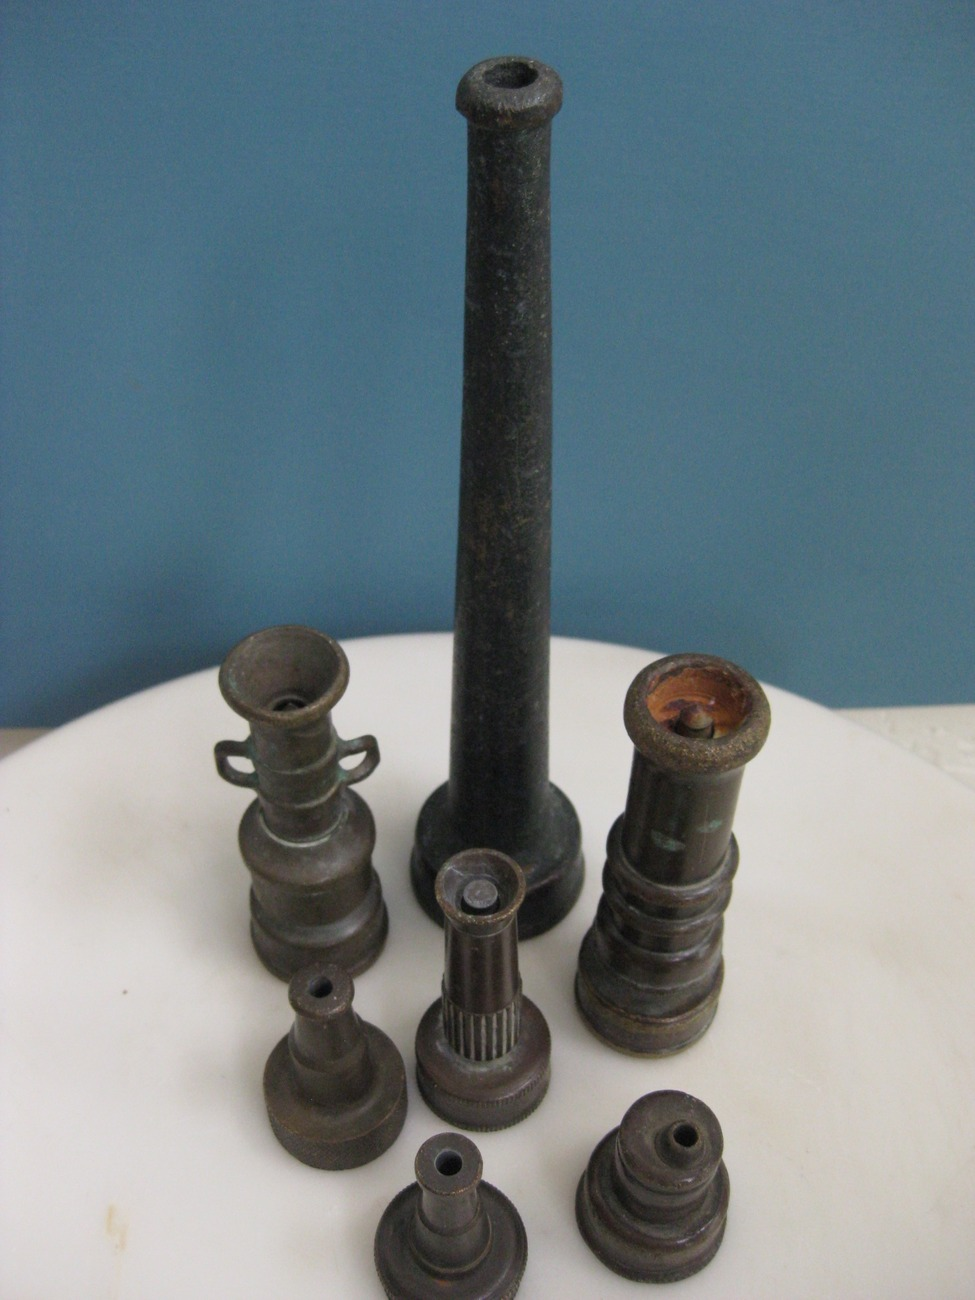 Antique American Water Nozzle Collection c 1920 - 1950